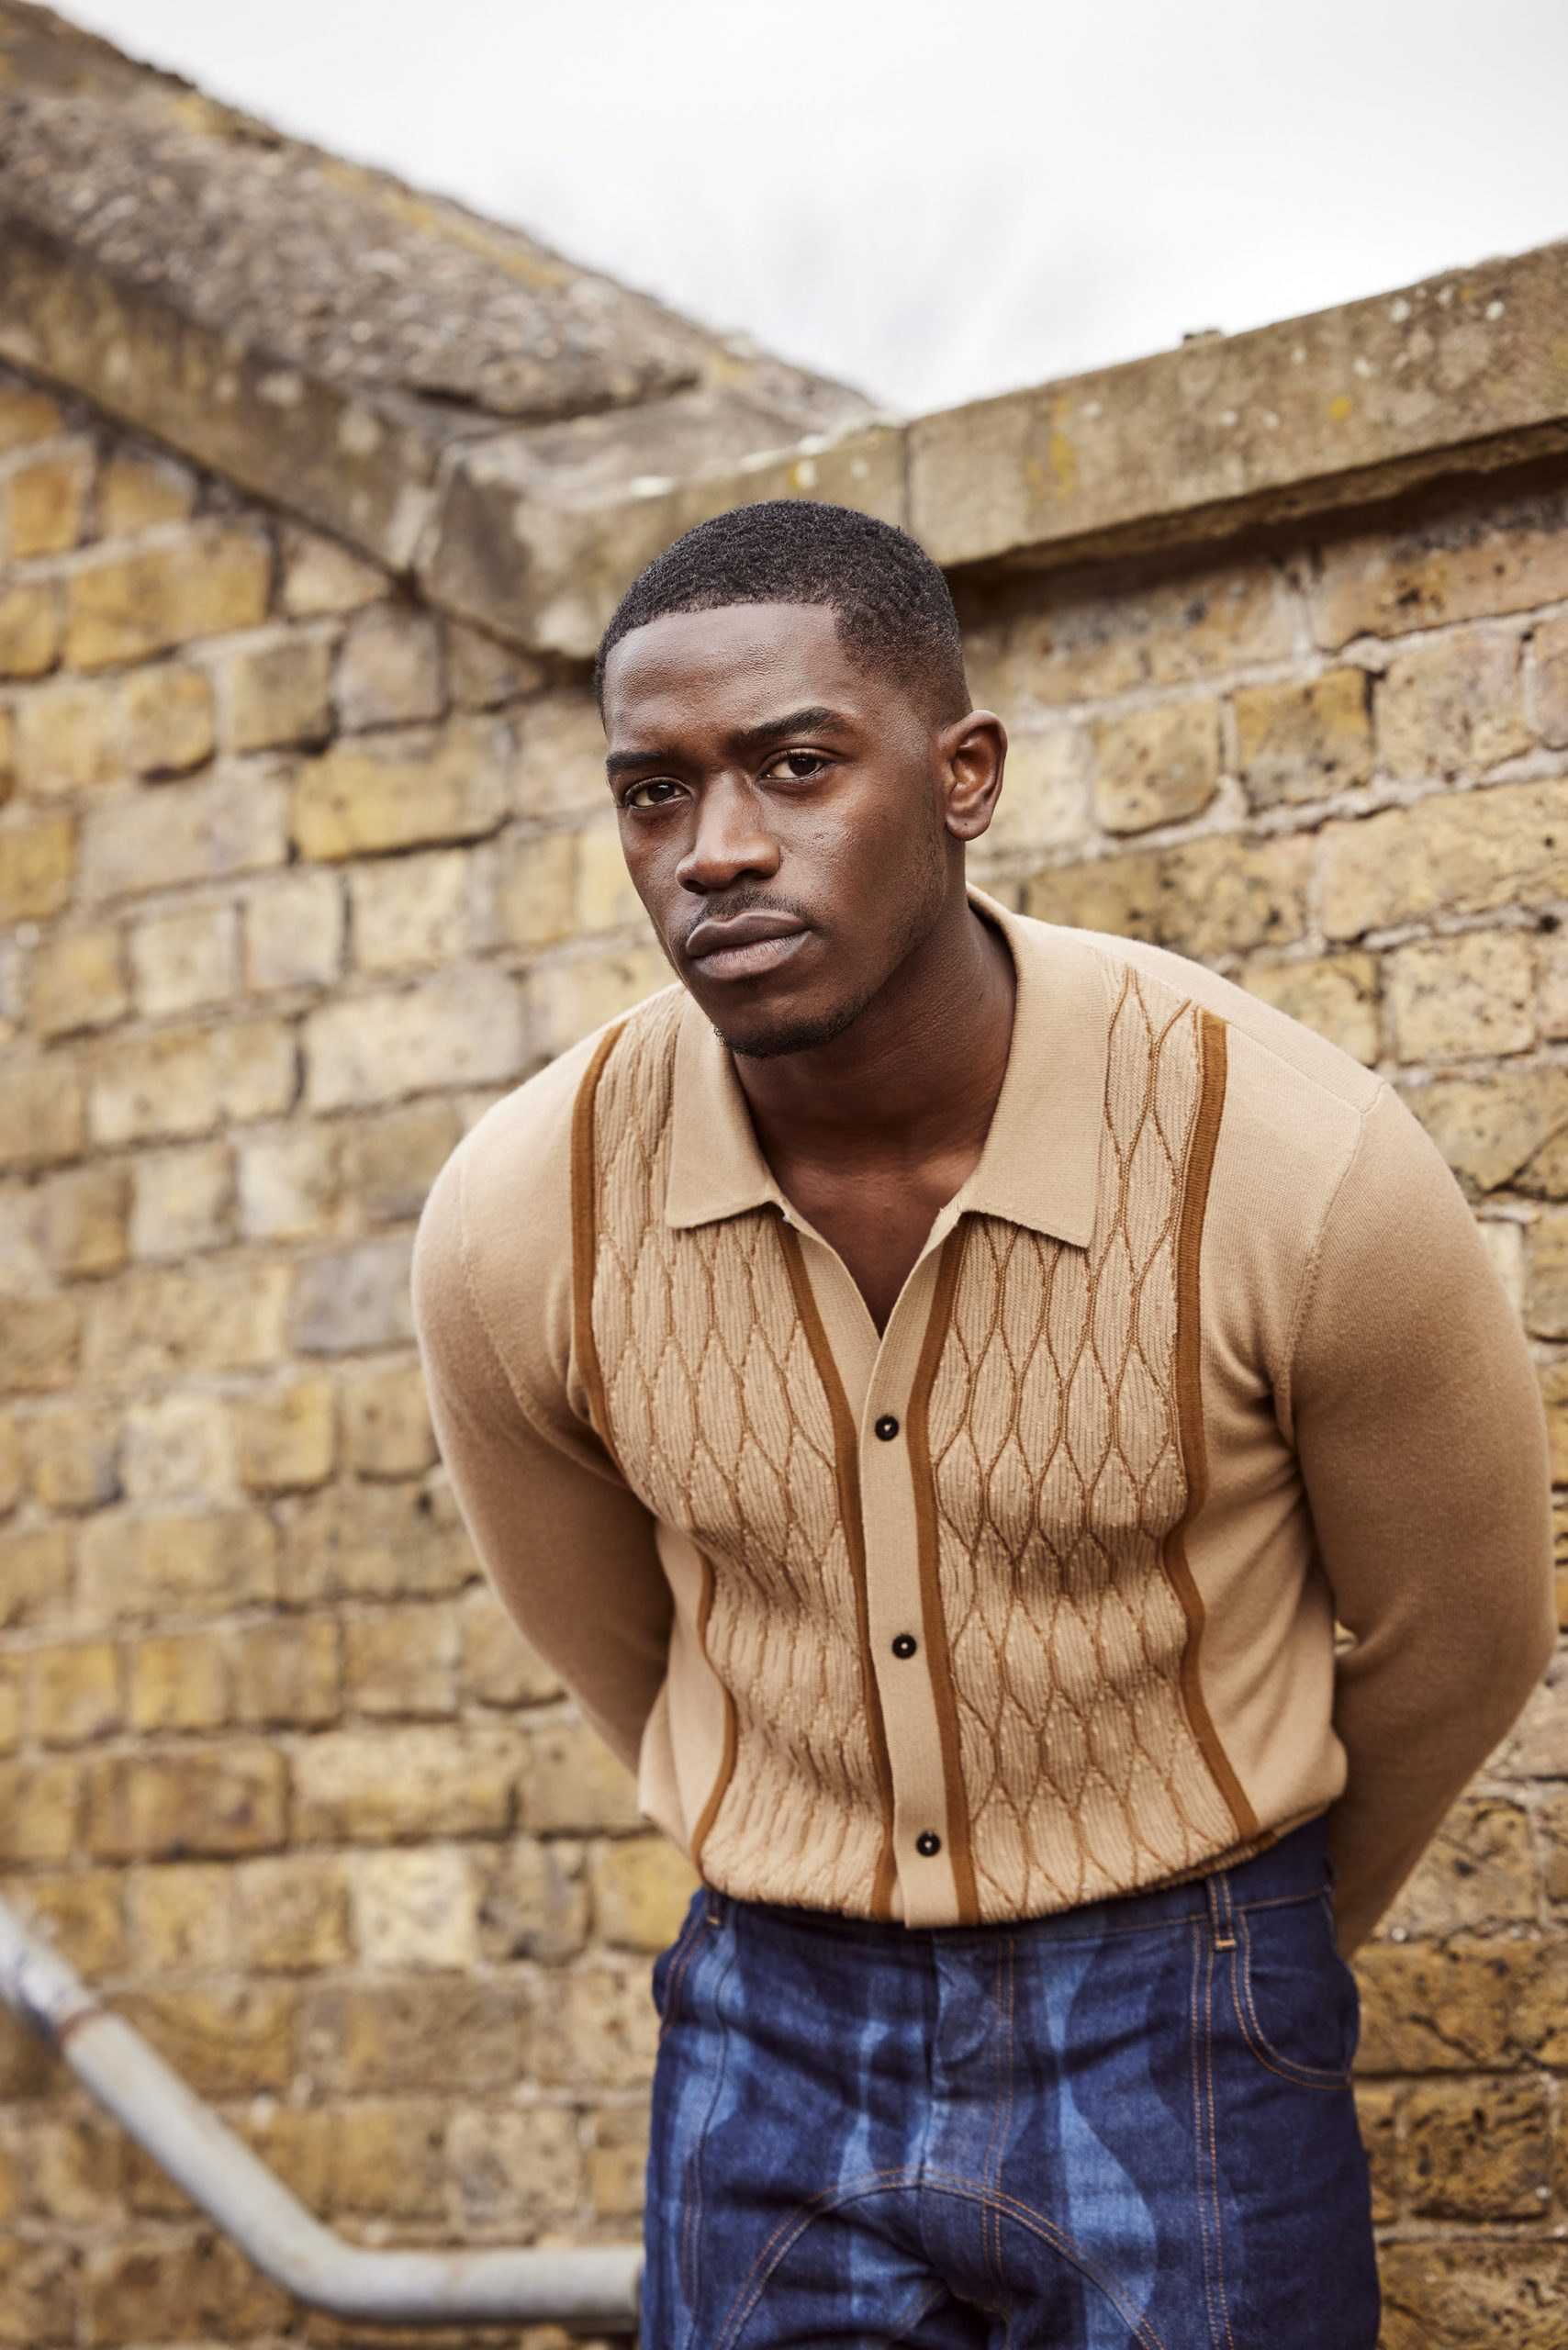 Damson Idris stood on stairway and looking at the camera